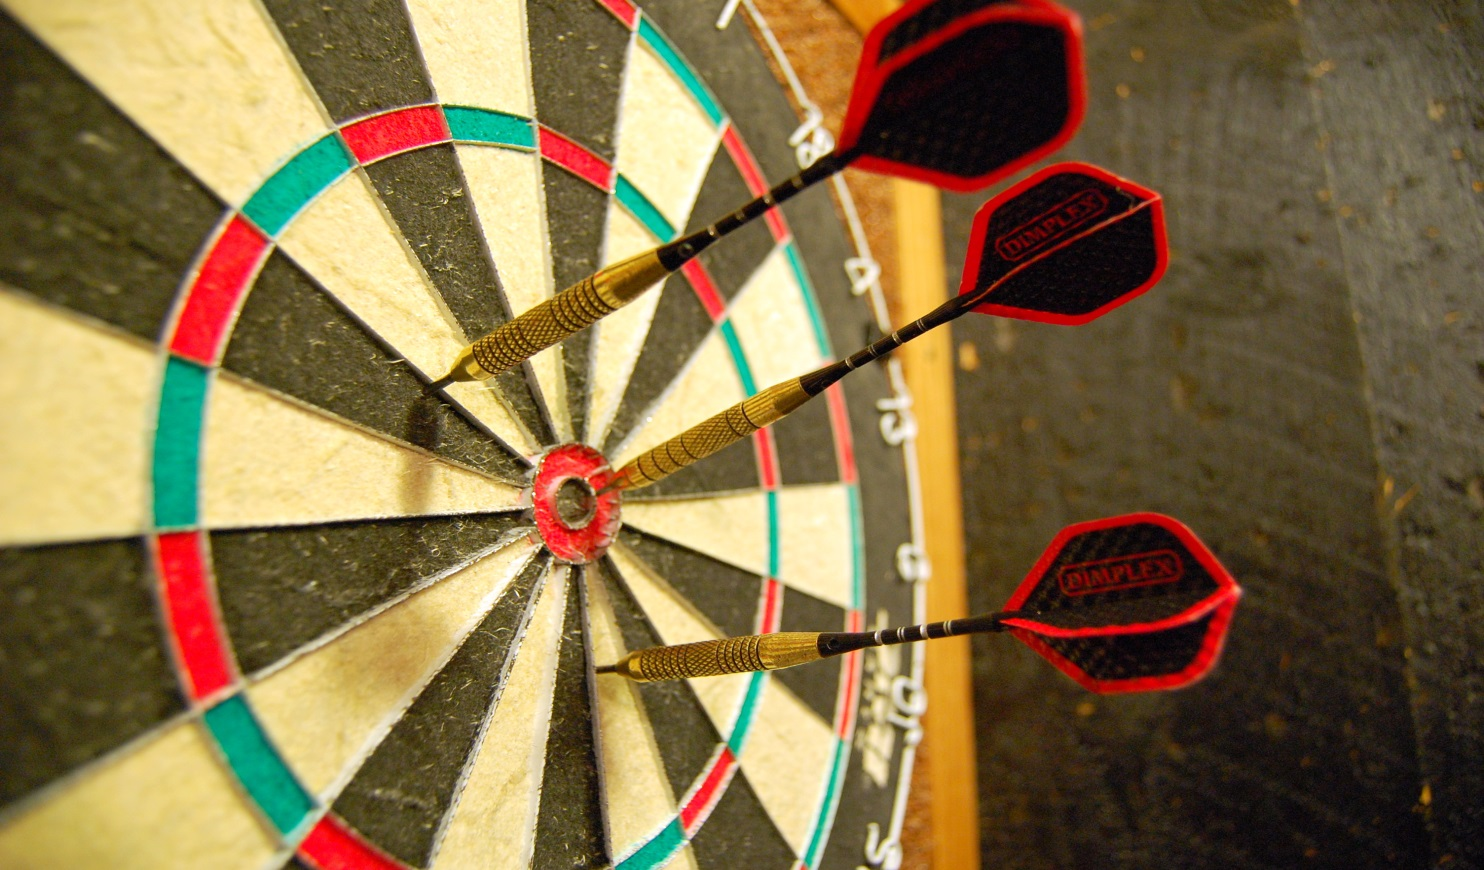 http://upload.wikimedia.org/wikipedia/commons/f/fb/Darts_in_a_dartboard.jpg